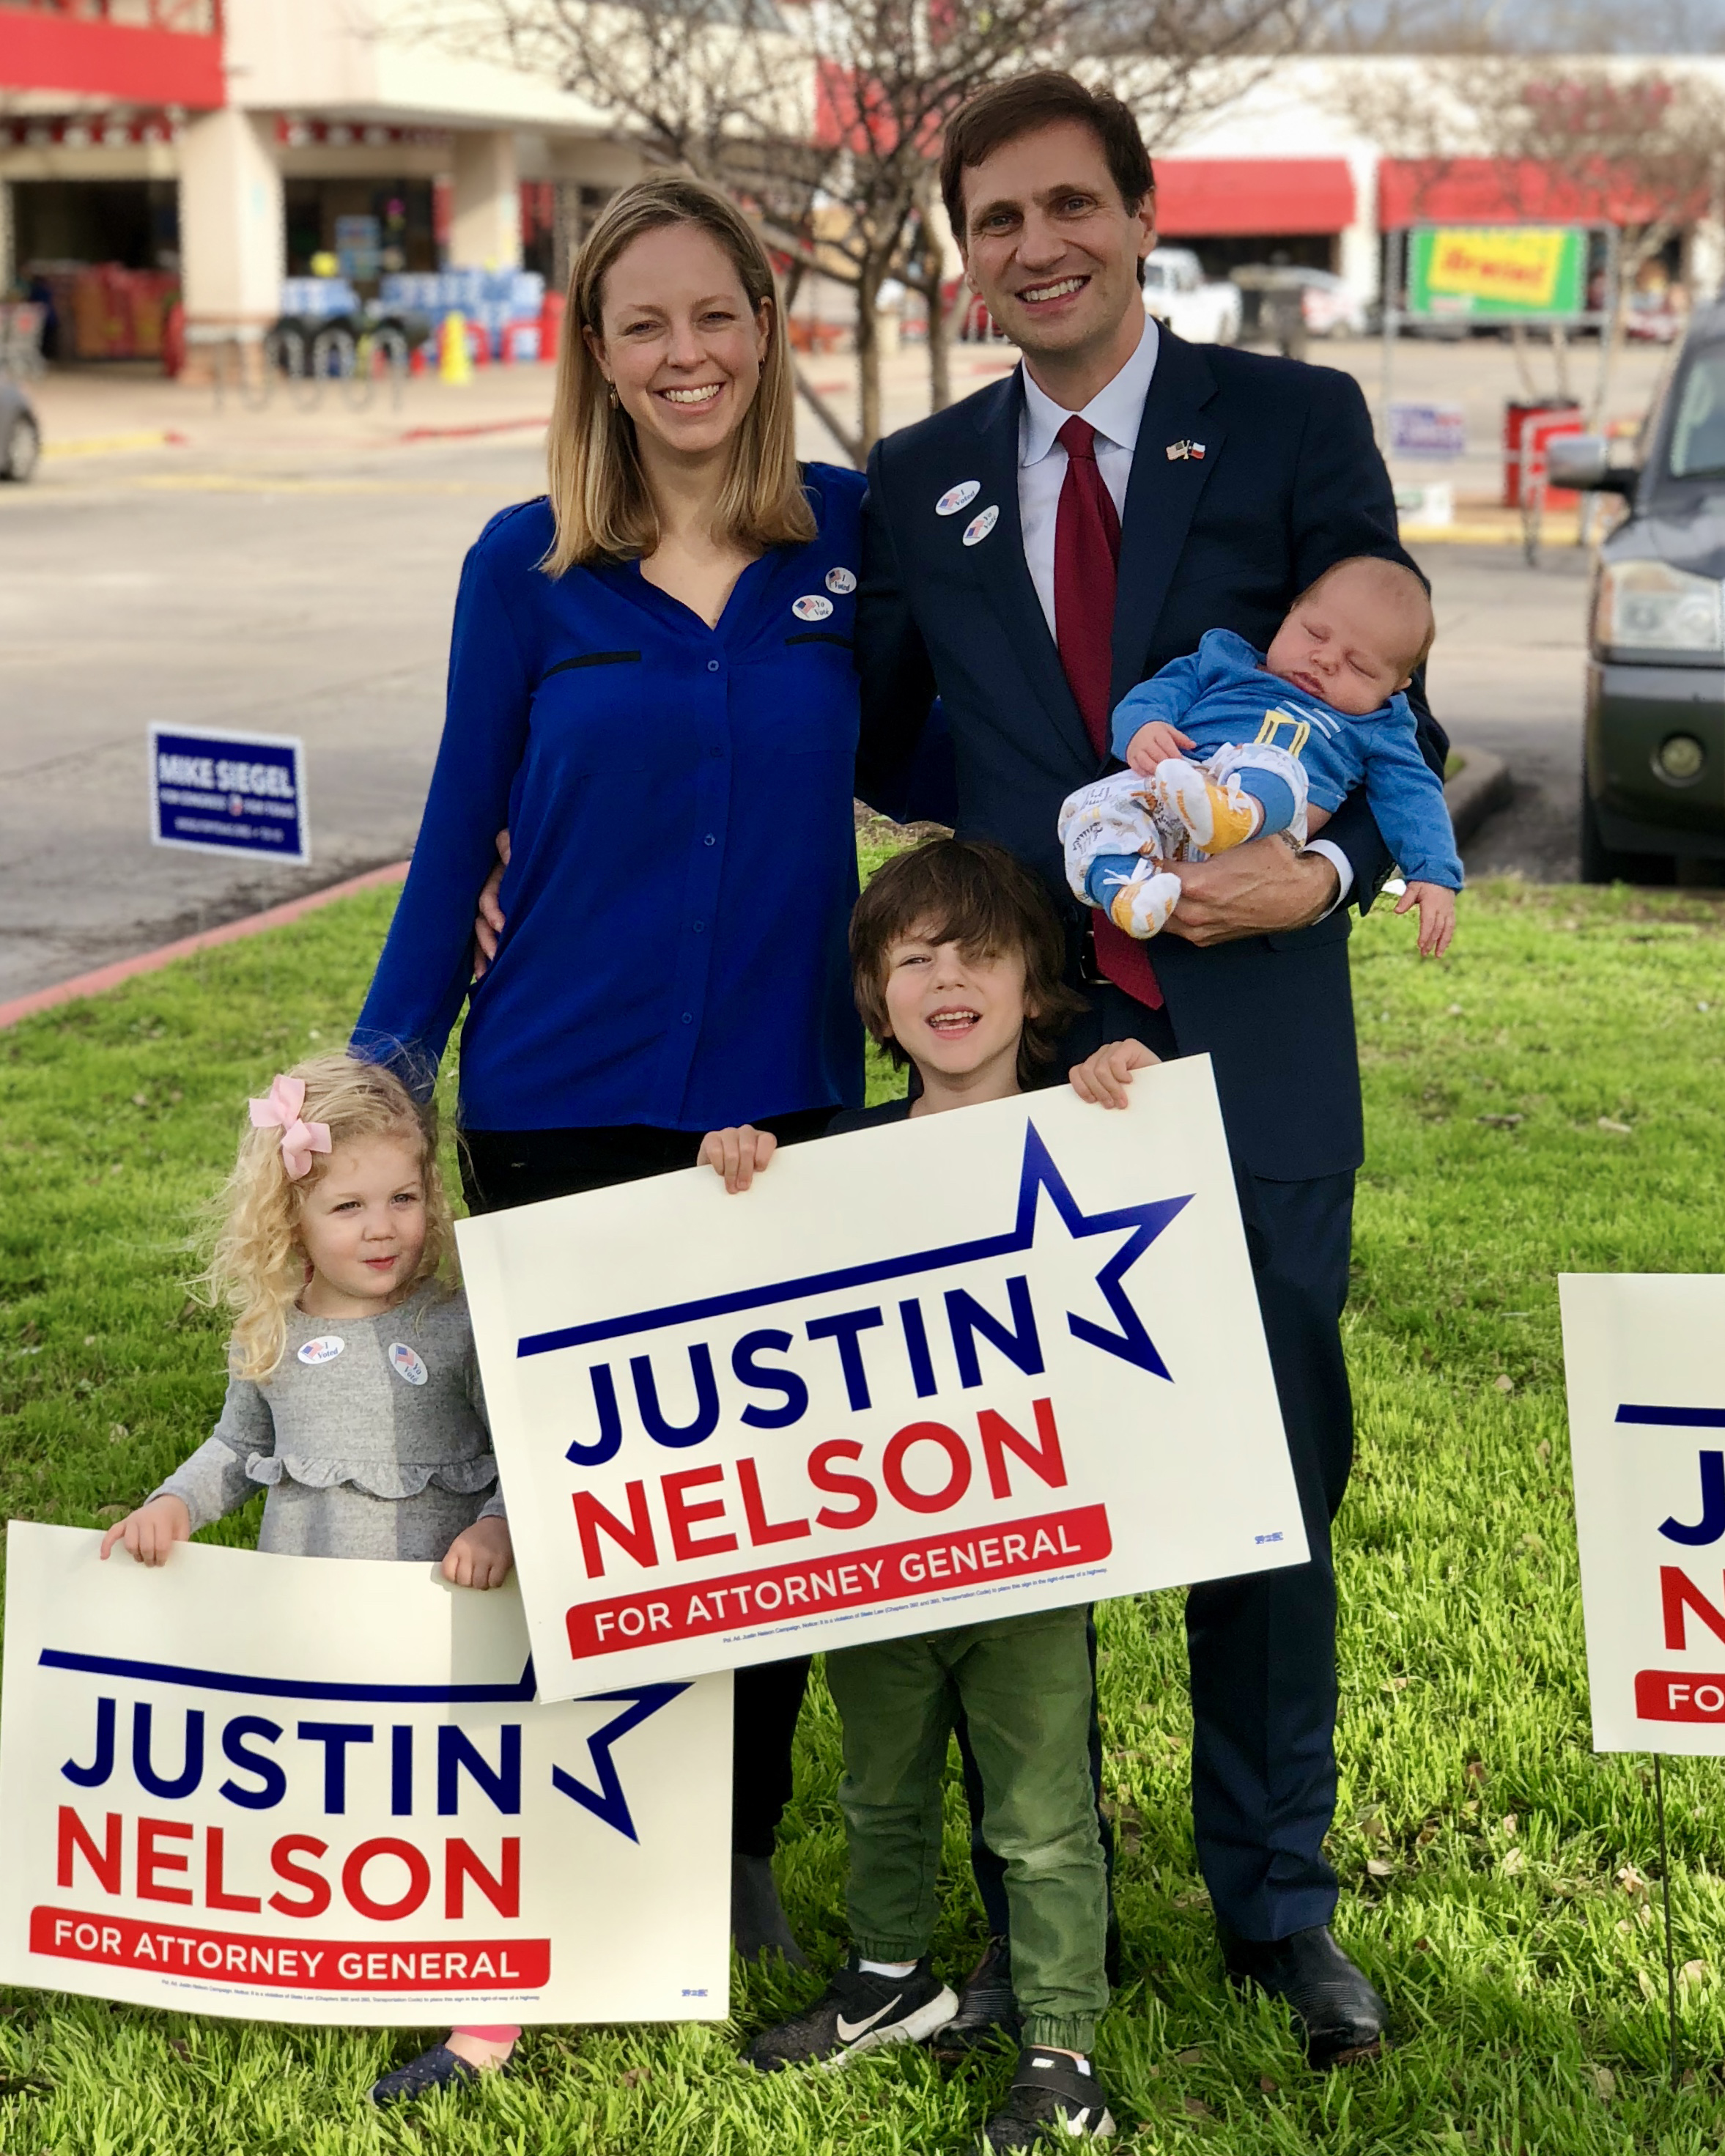 Justin Nelson and Family Voting